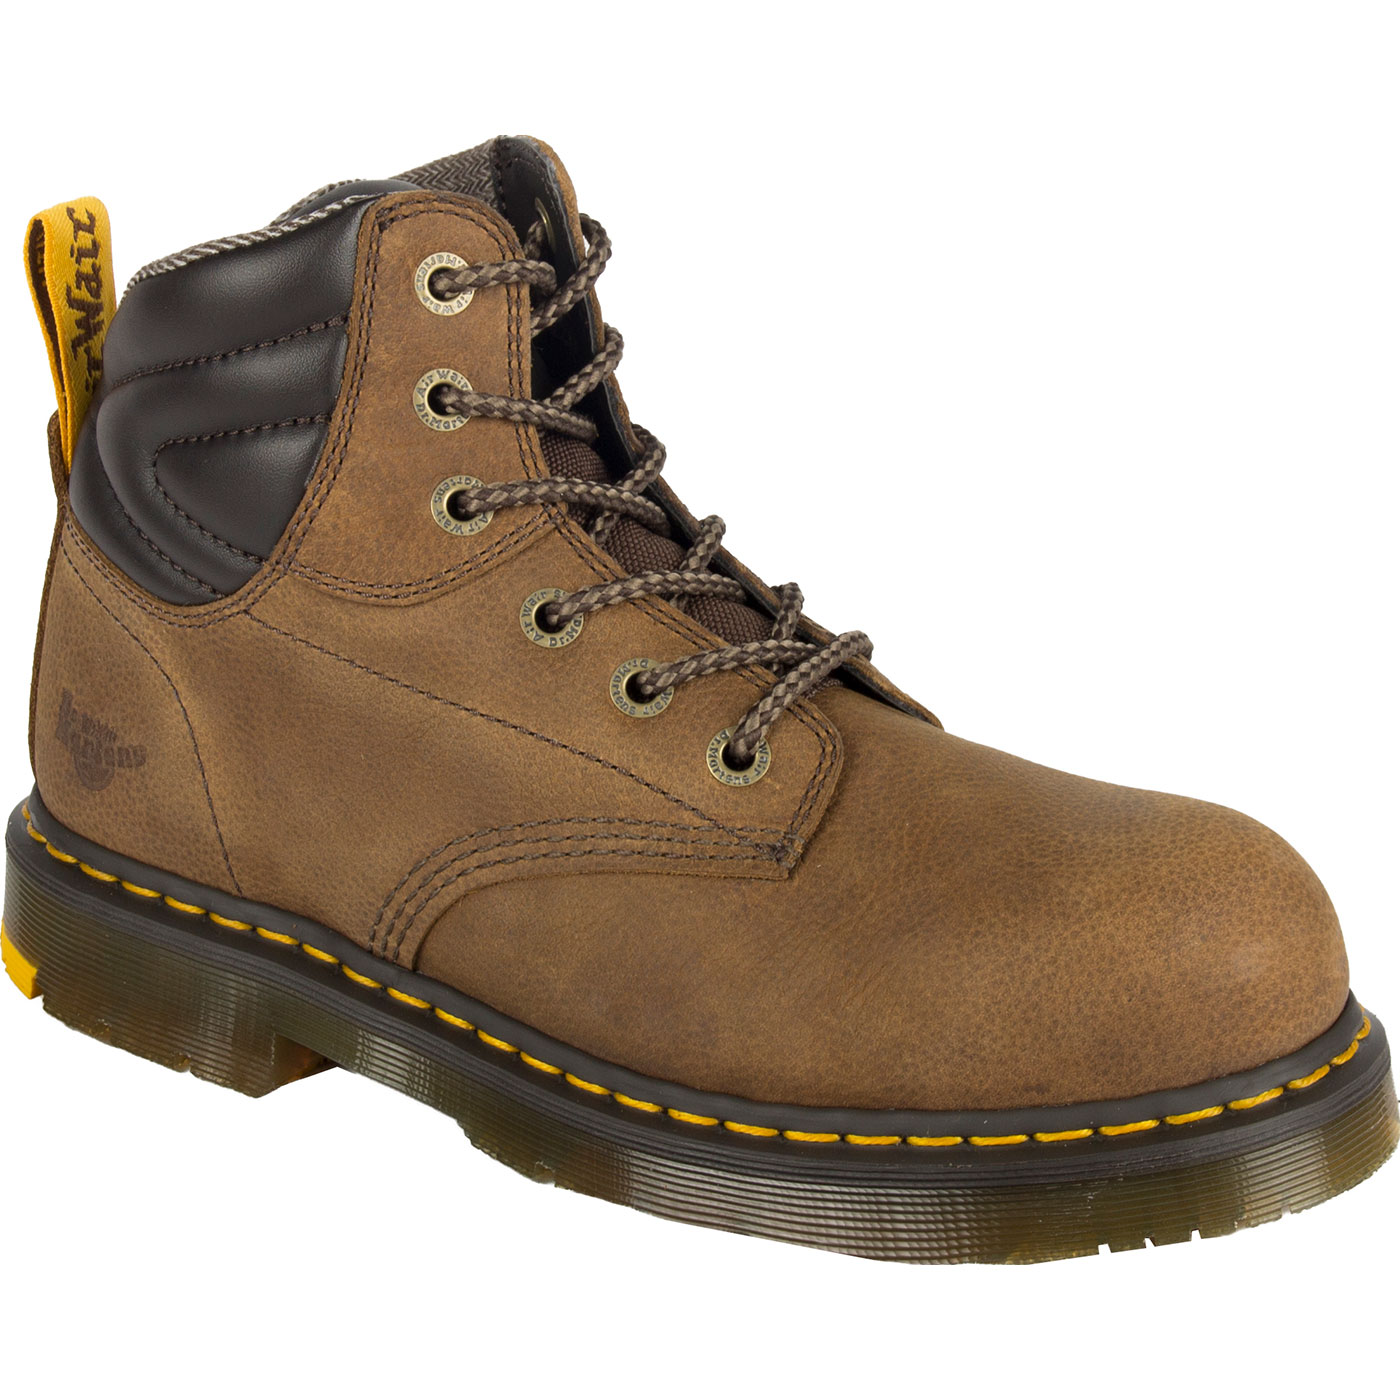 79734140a99 Dr. Martens Hynine Men's 6 inch Steel Toe Electrical Hazard Work Boots